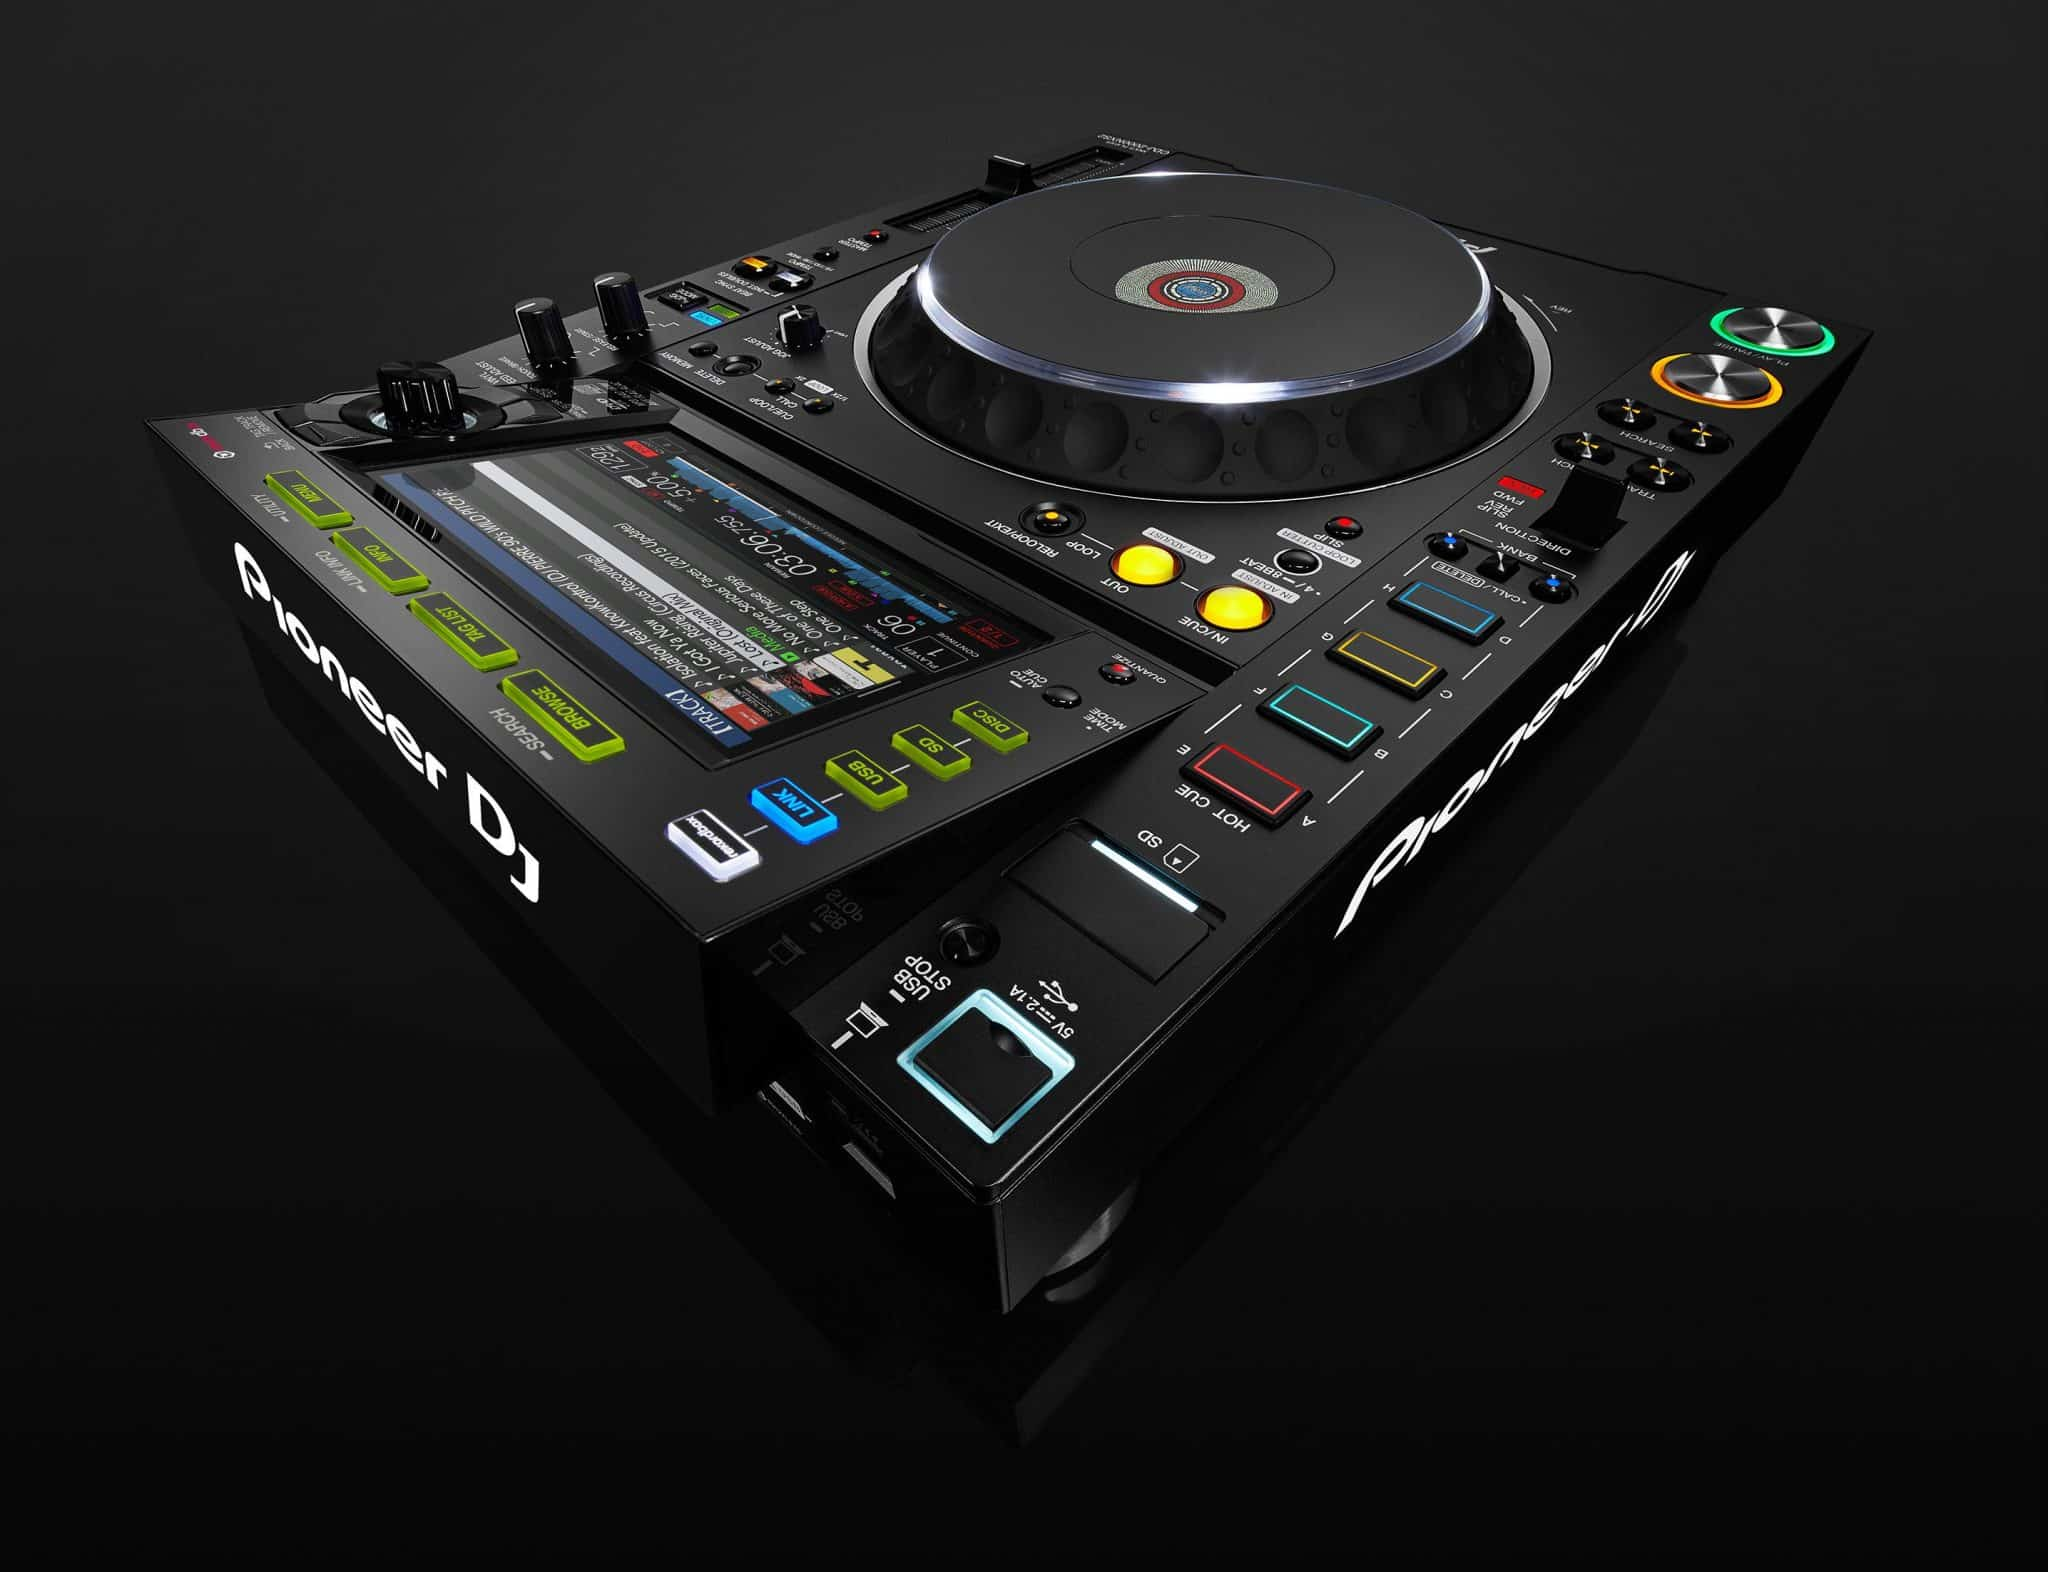 Pioneer DJ CDJ-2000NXS2 – Review The King of DJ players